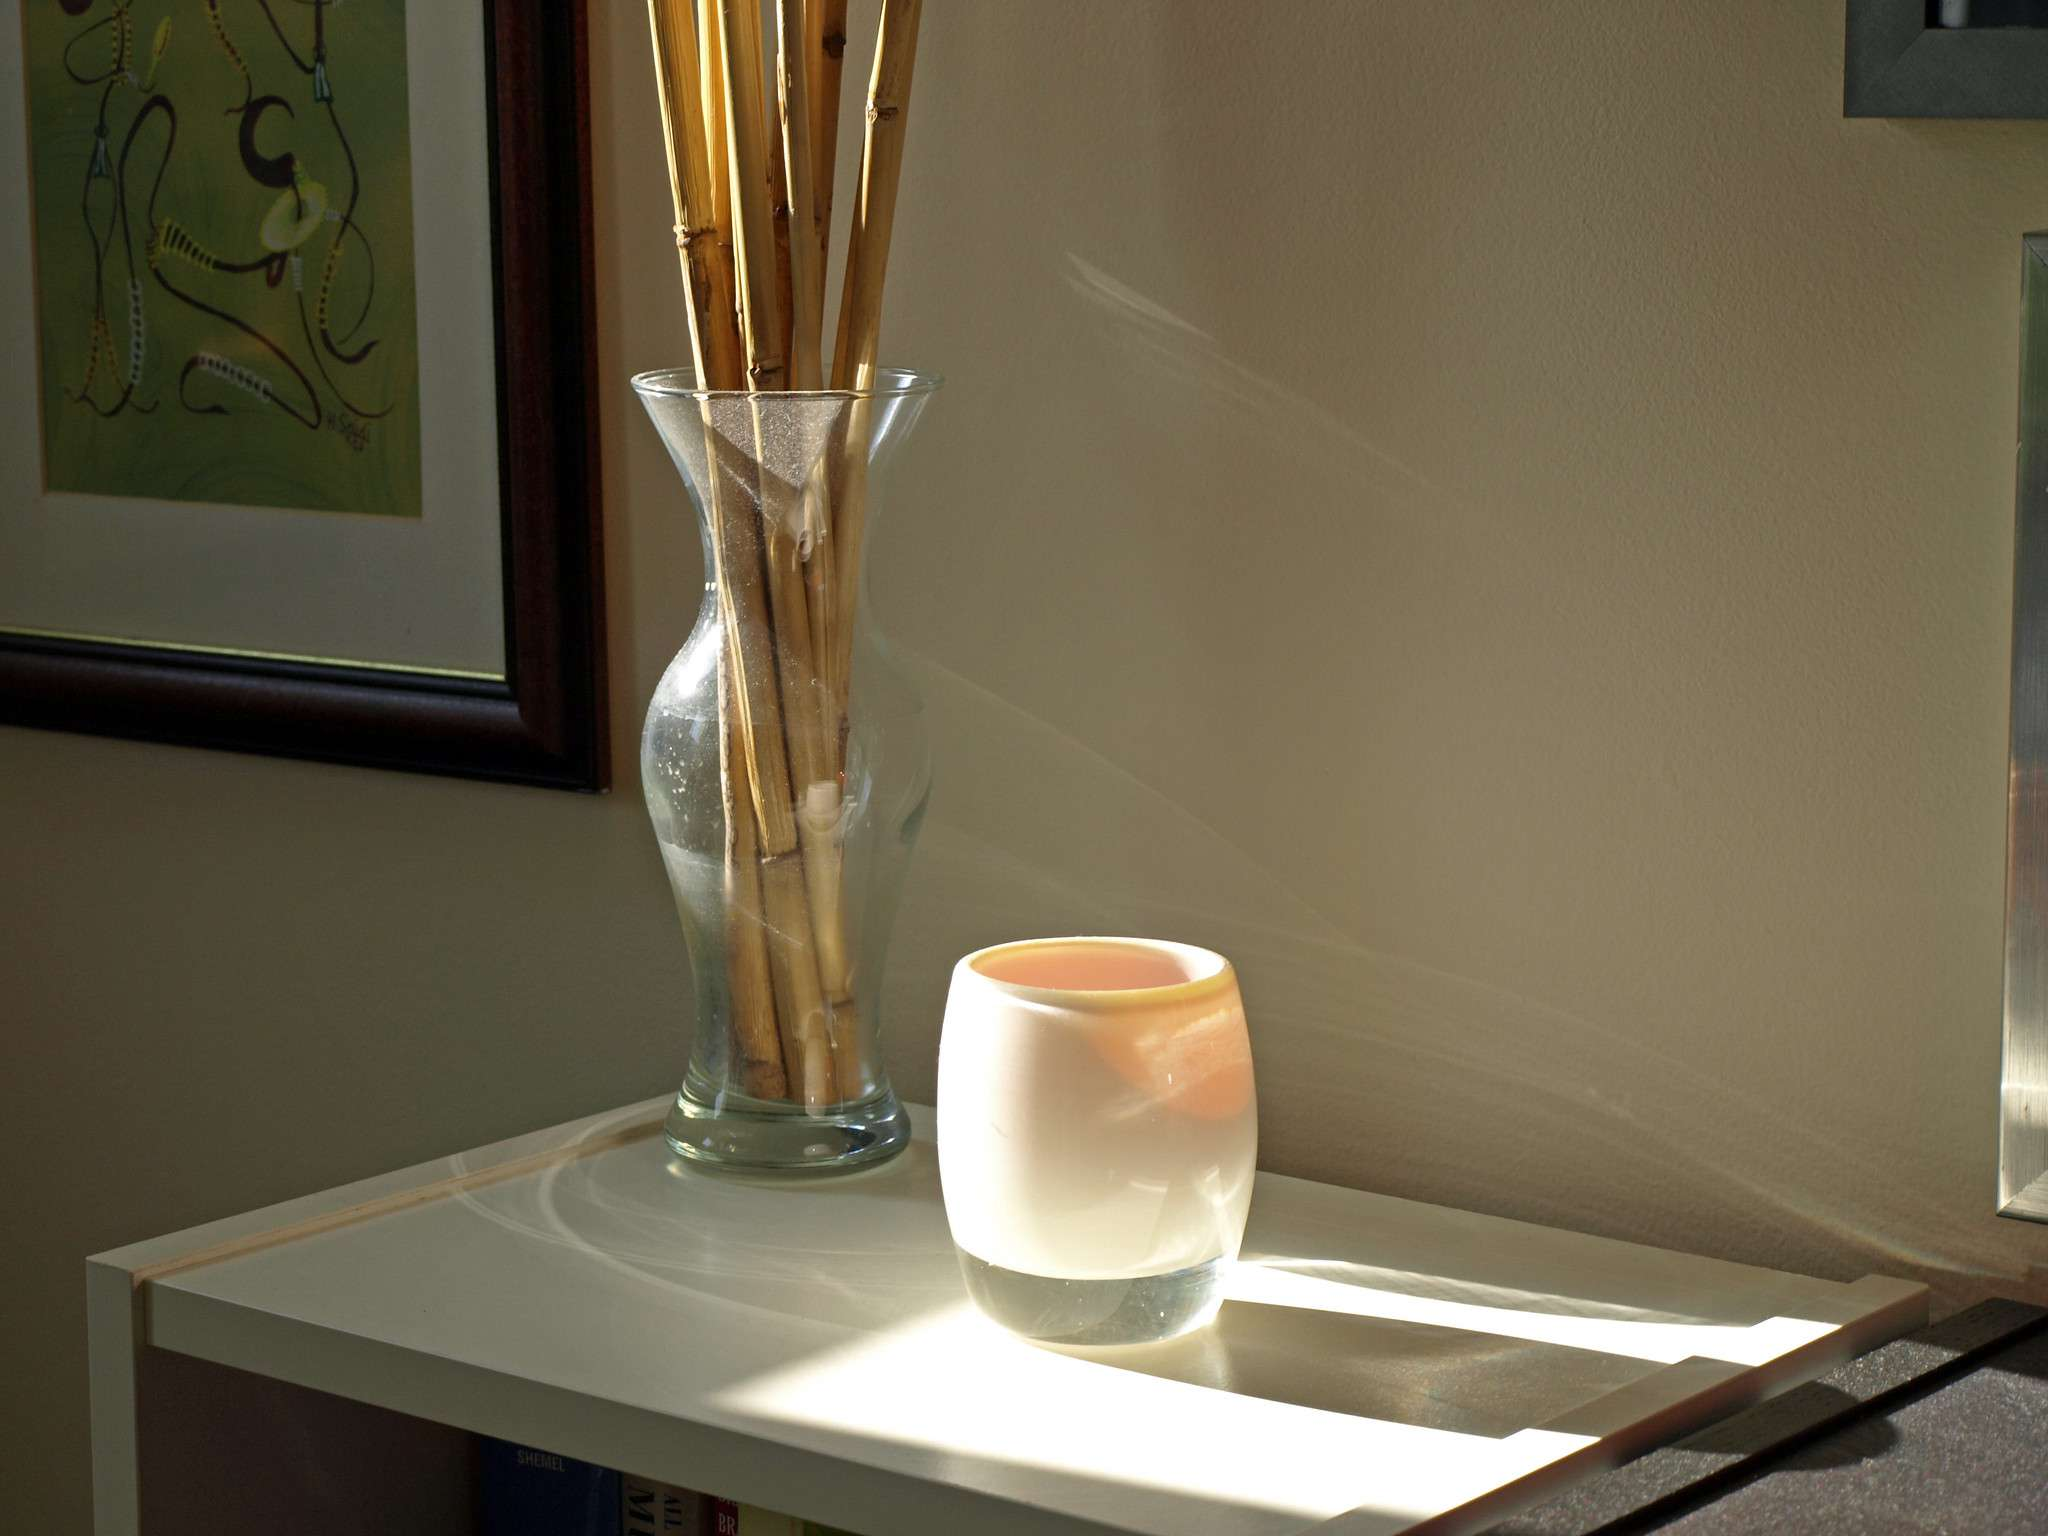 Glassy baby votive sitting on top of a bookshelf next to a vase of dried bamboo